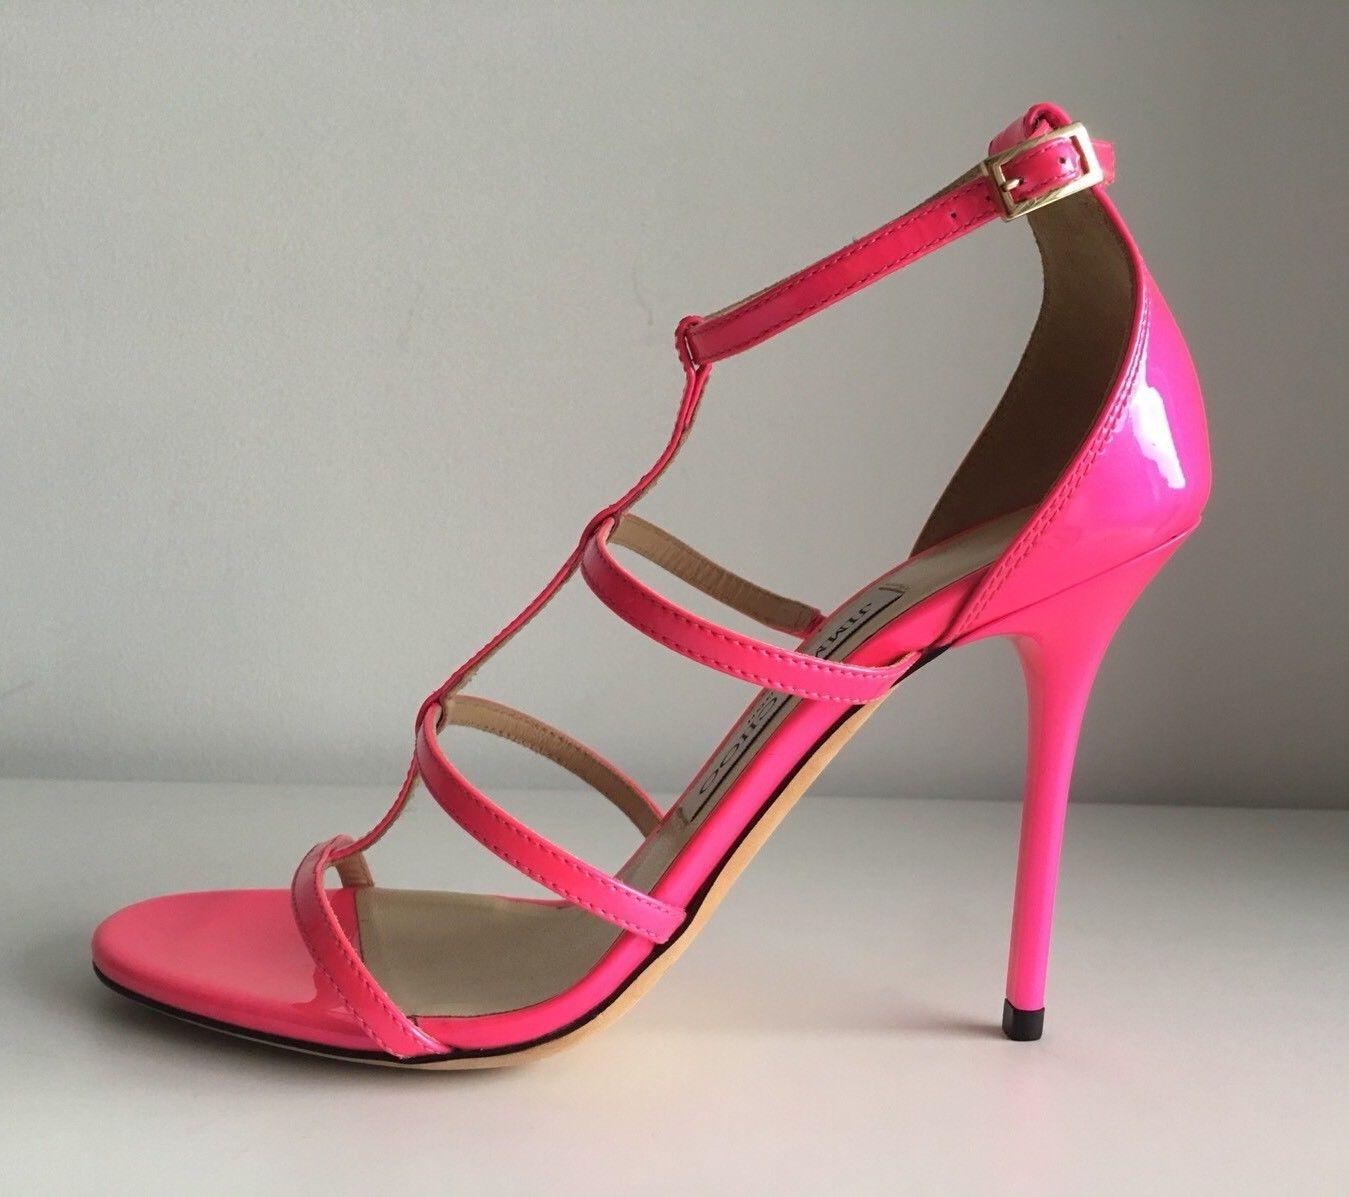 7b4ad69943bf ... Jimmy Choo Neon Pink Pink Pink Dory Patent Leather Cage Sandals Size EU  36 (Approx ...